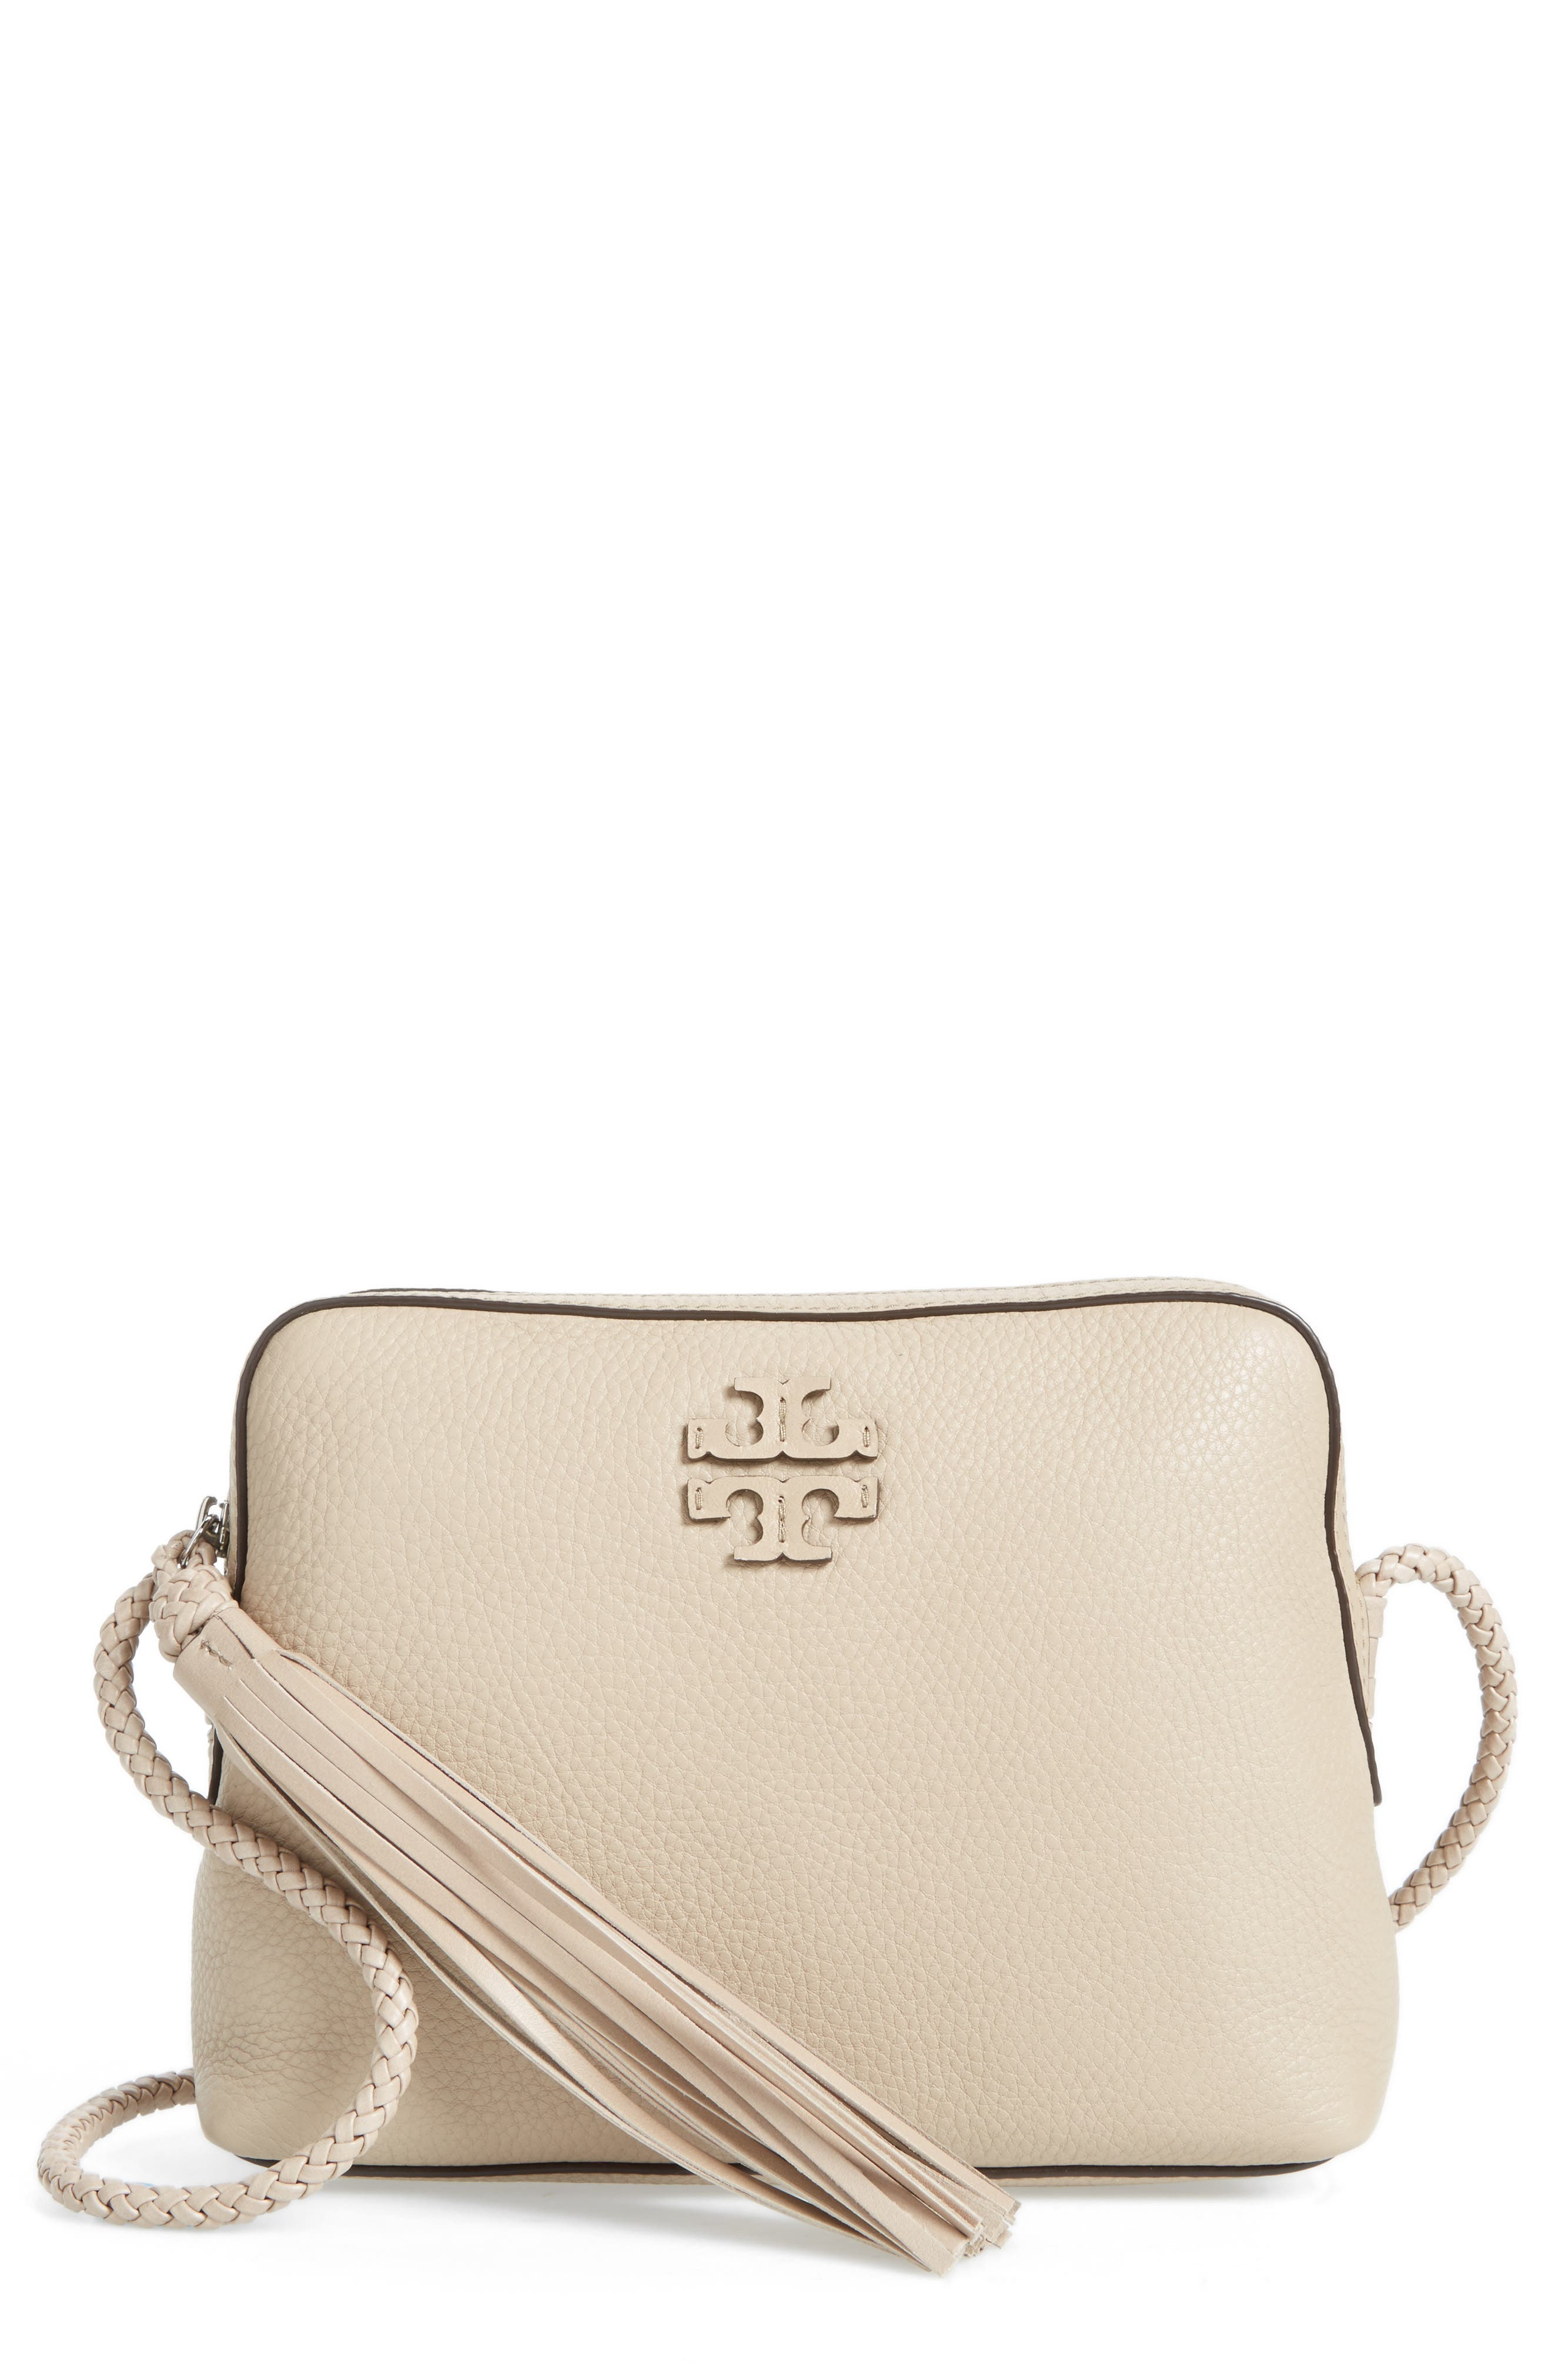 Main Image - Tory Burch Taylor Leather Camera Bag